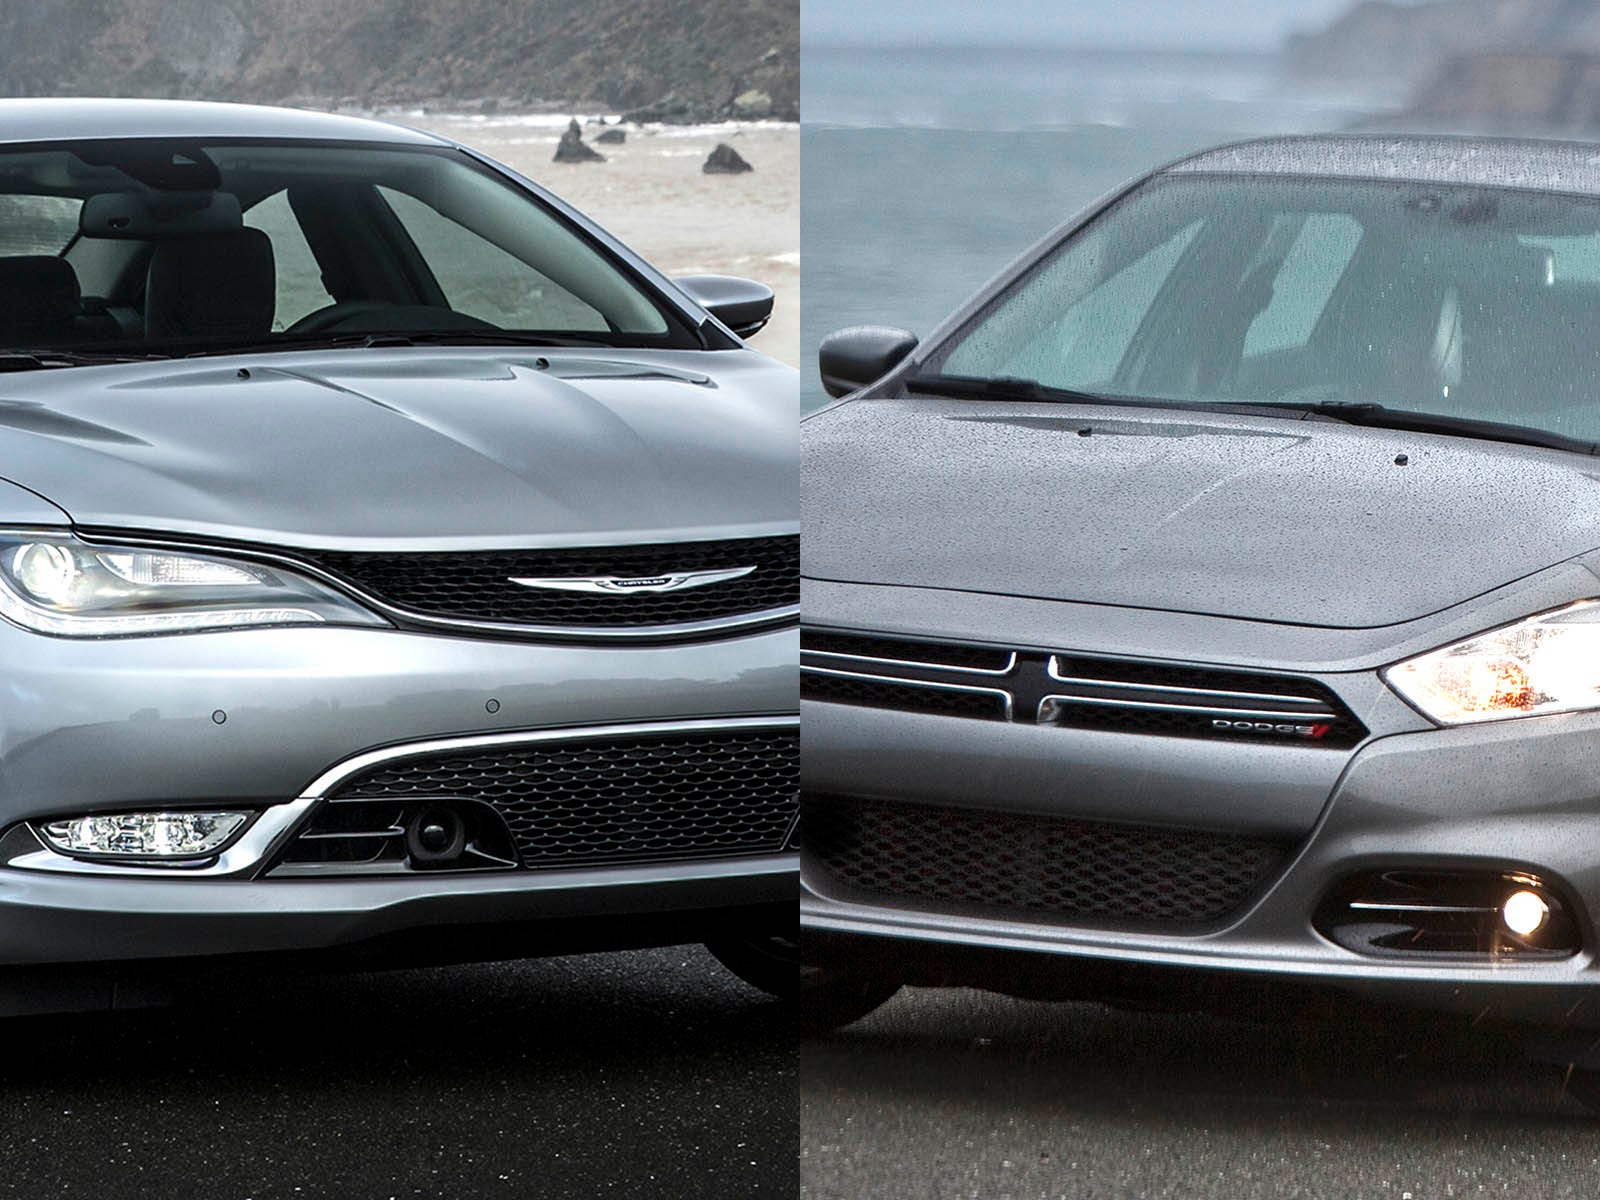 Chrysler 200: If You Need Assistance